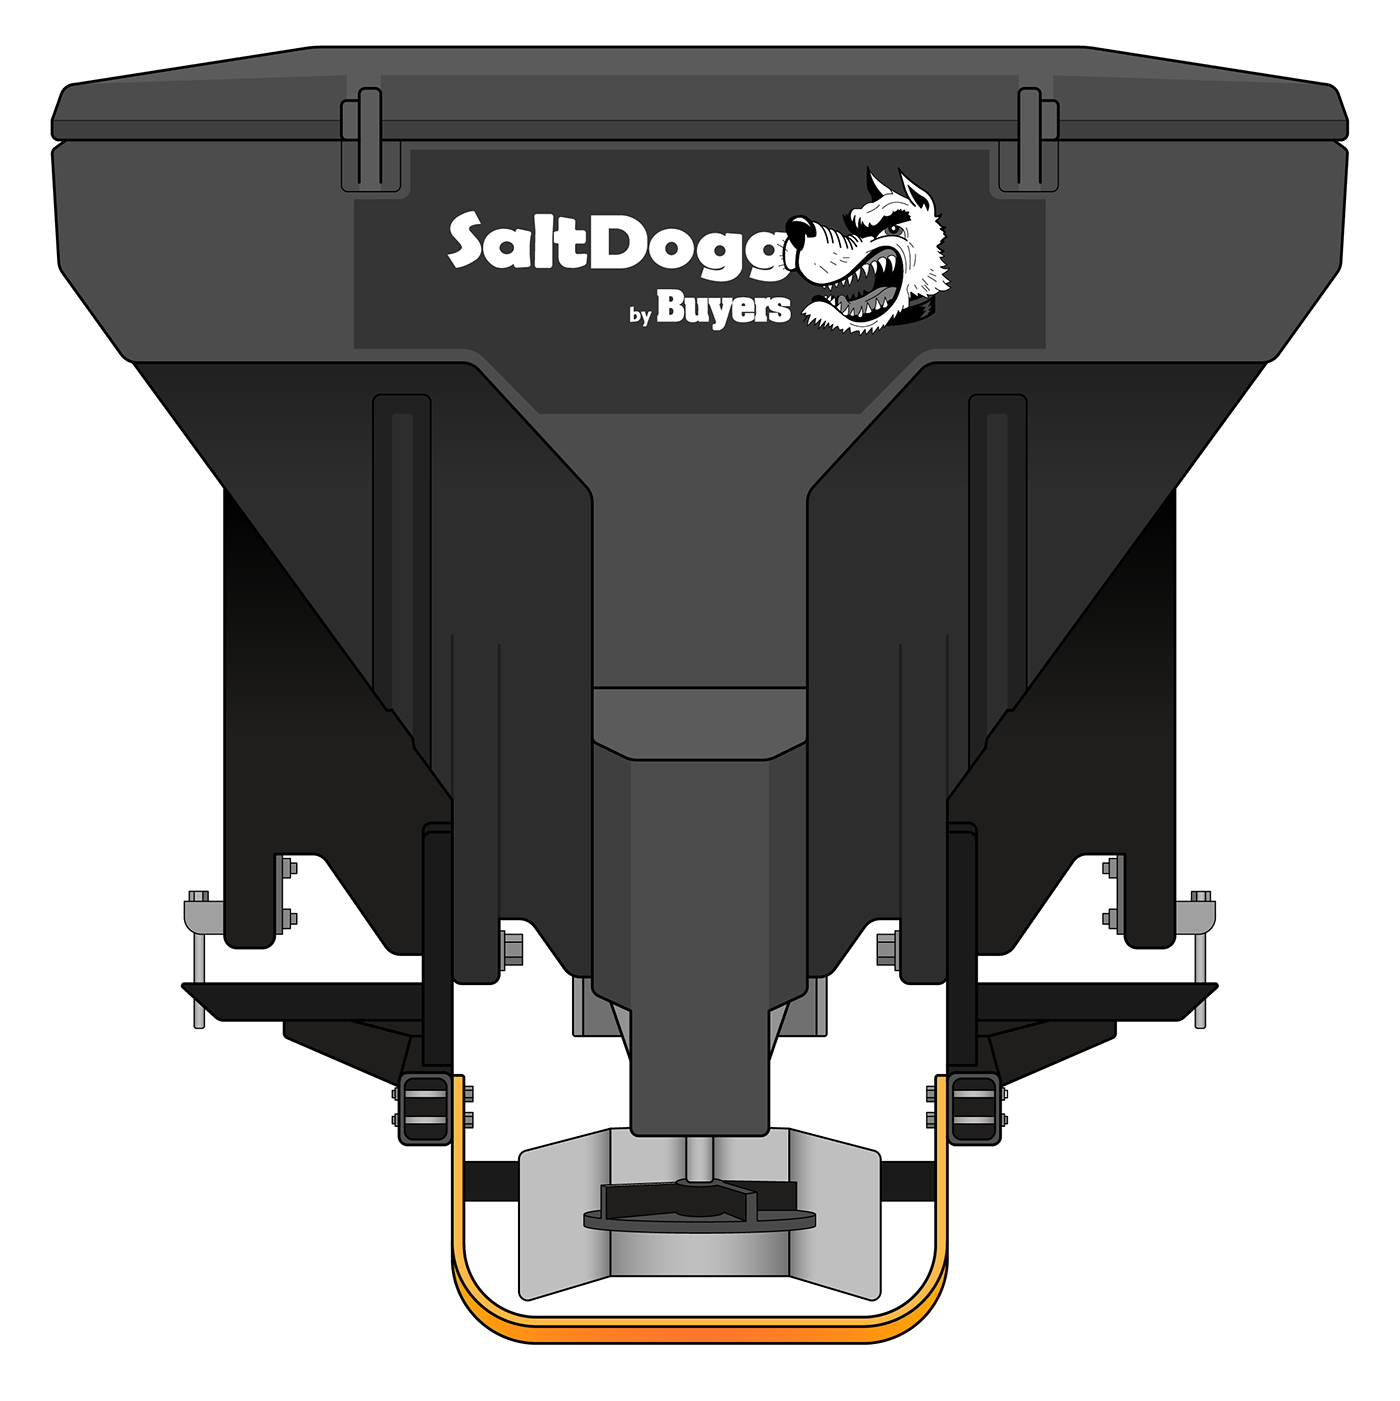 TGS07-S.A.M. SaltDogg TGS07 11.0 Cubic Foot Black Polymer Electric Tailgate Spreader